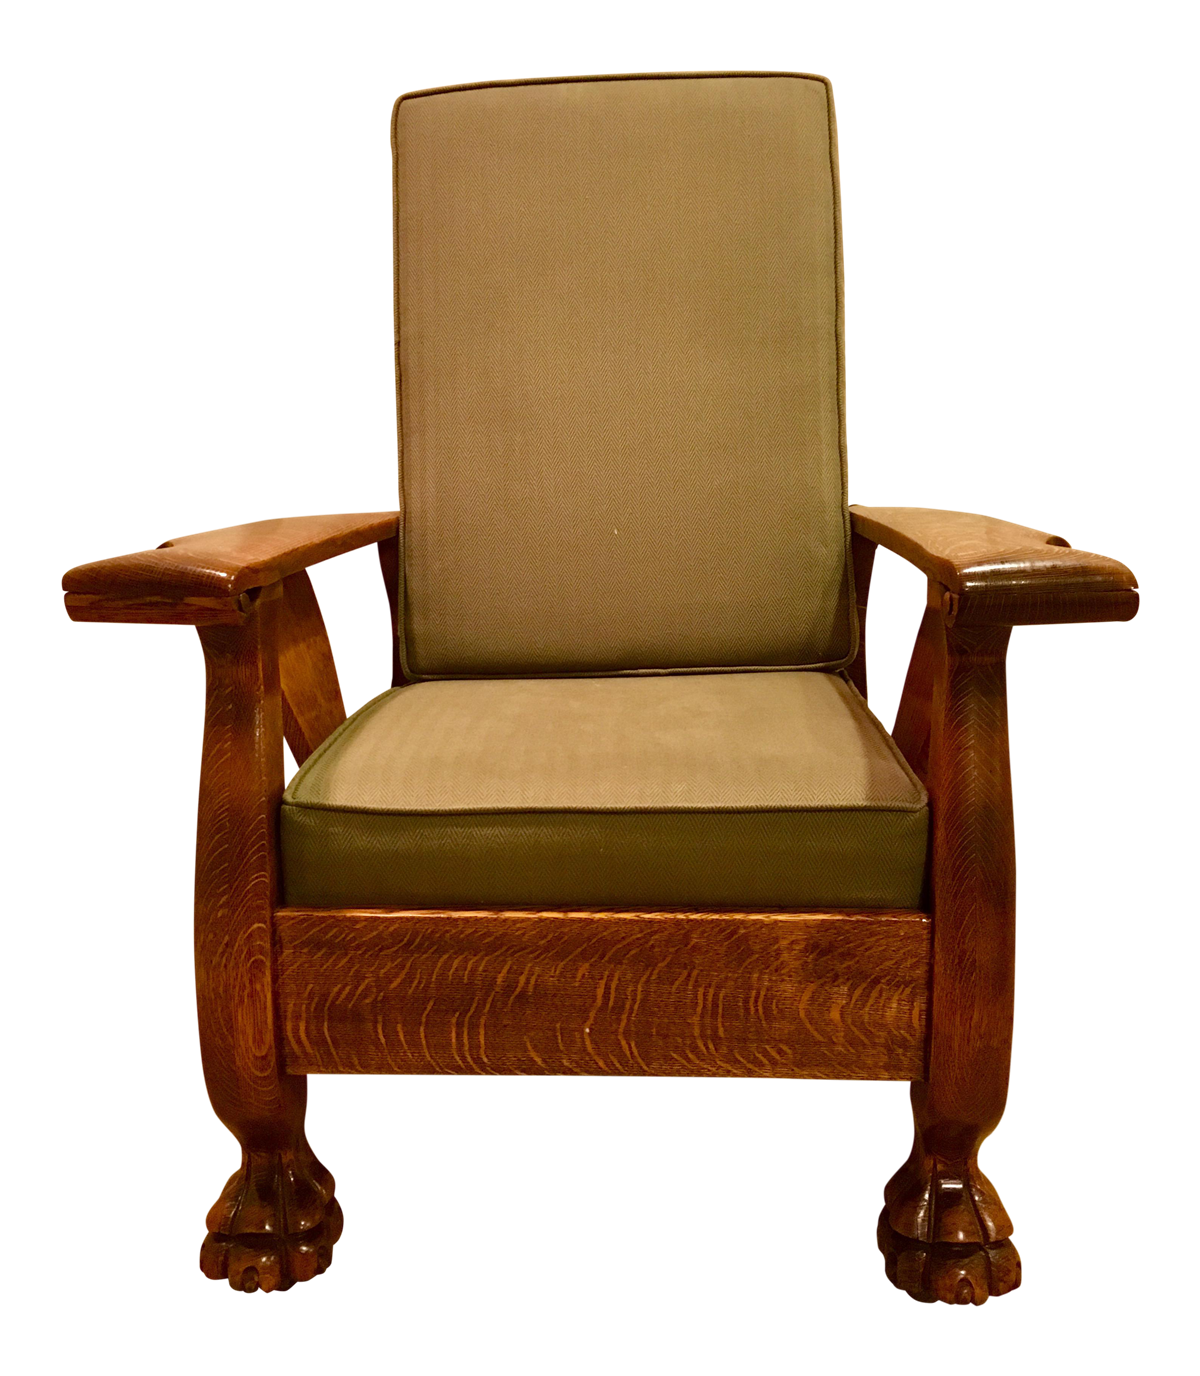 Morris Chair Image Free Photo PNG PNG Image